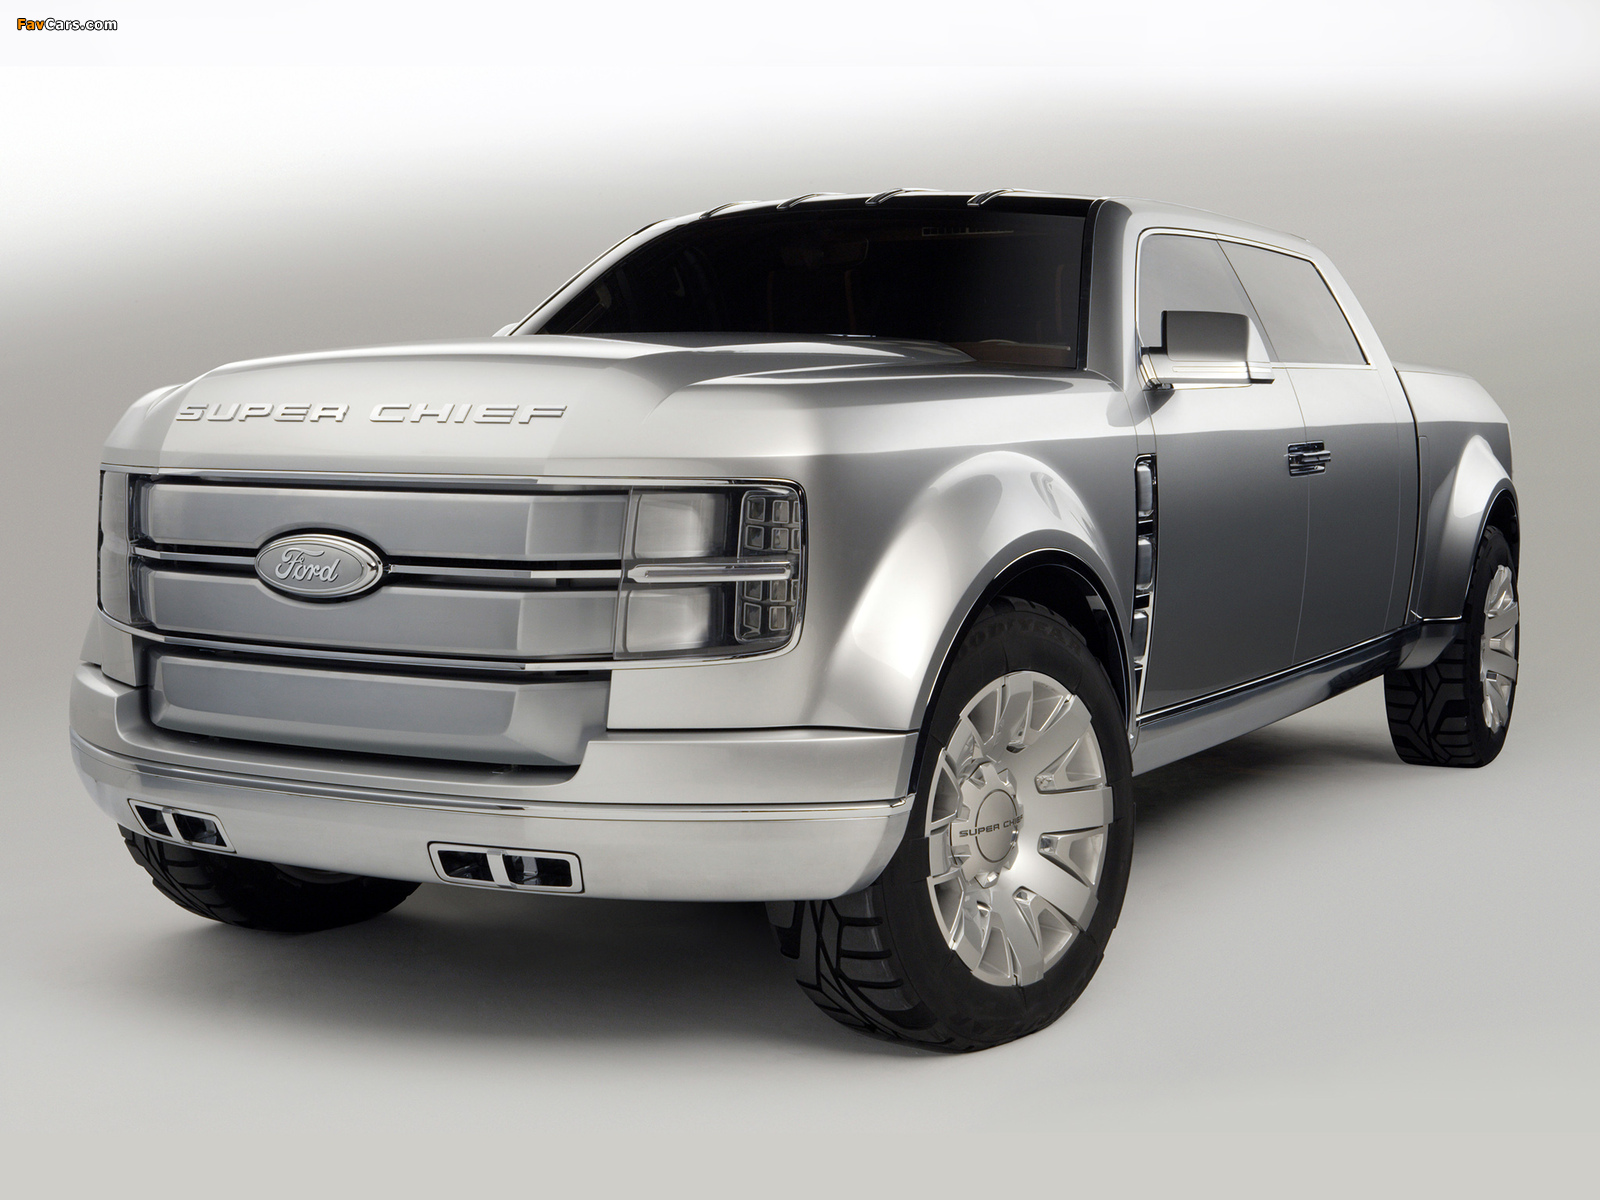 Ford F-250 Super Chief Concept 2006 images (1600 x 1200)